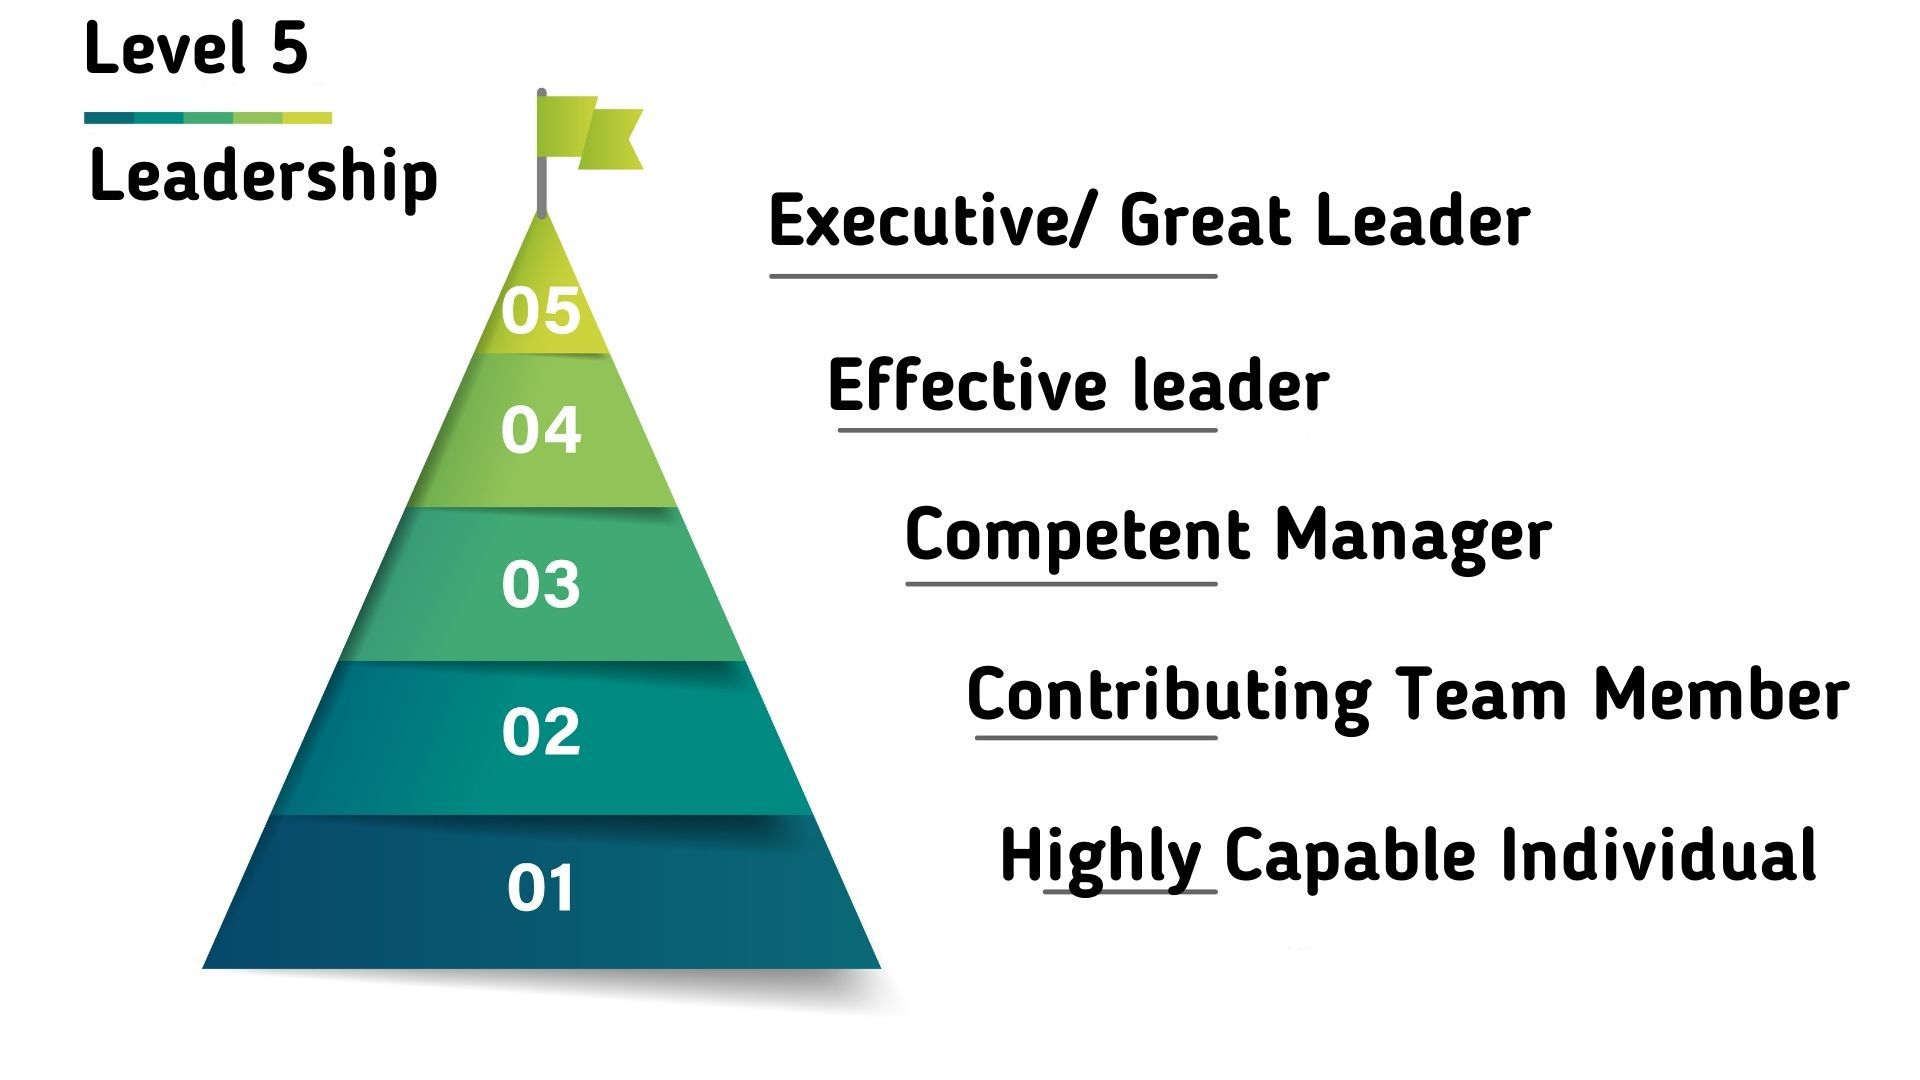 Hierarchy of Level 5 Leadership